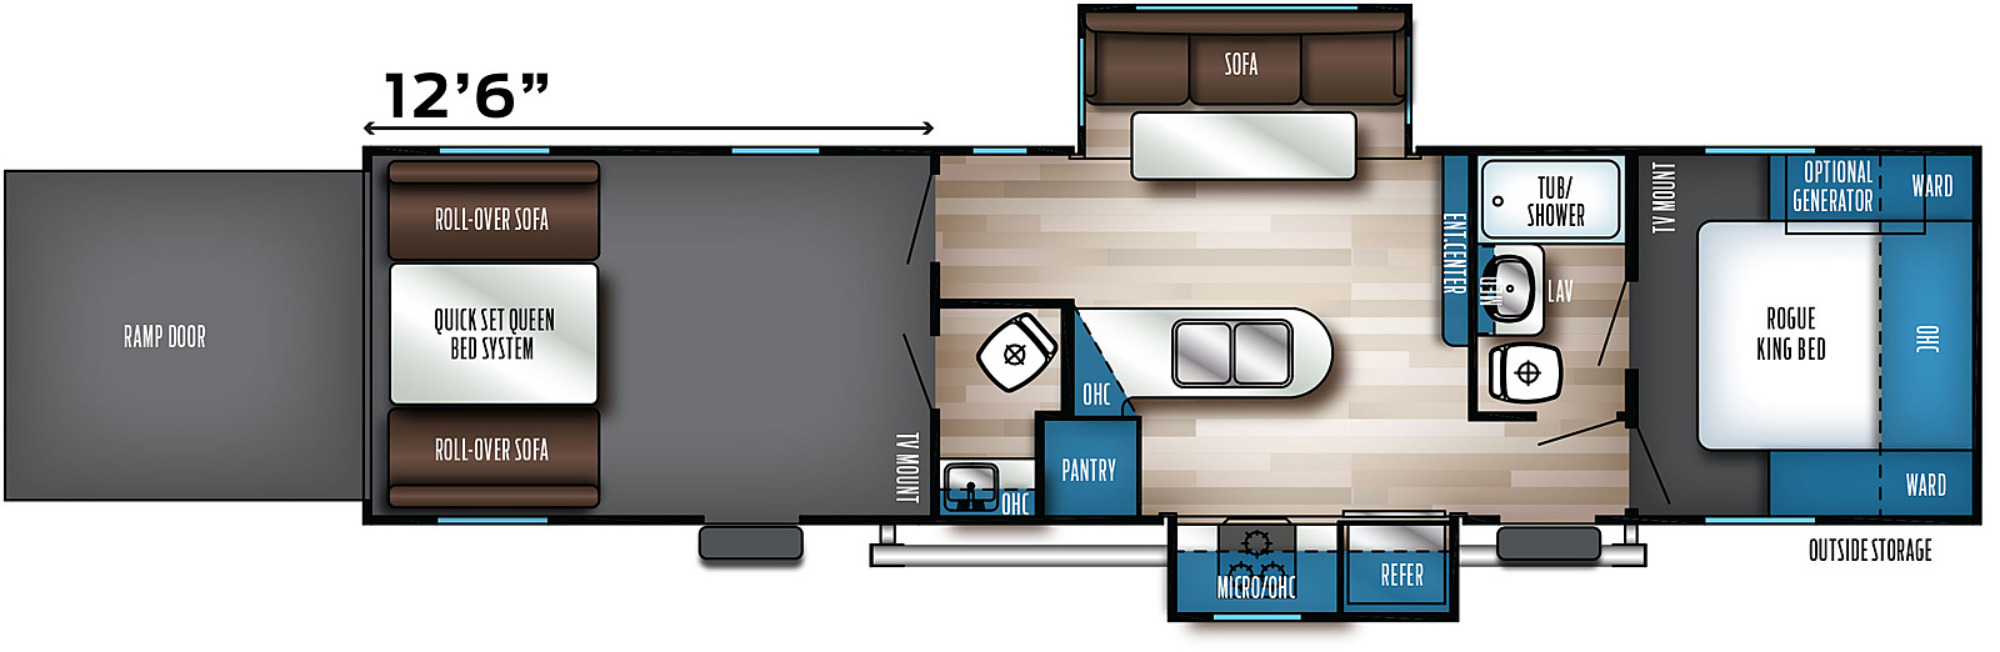 View Floor Plan for 2021 FOREST RIVER ROGUE 32V